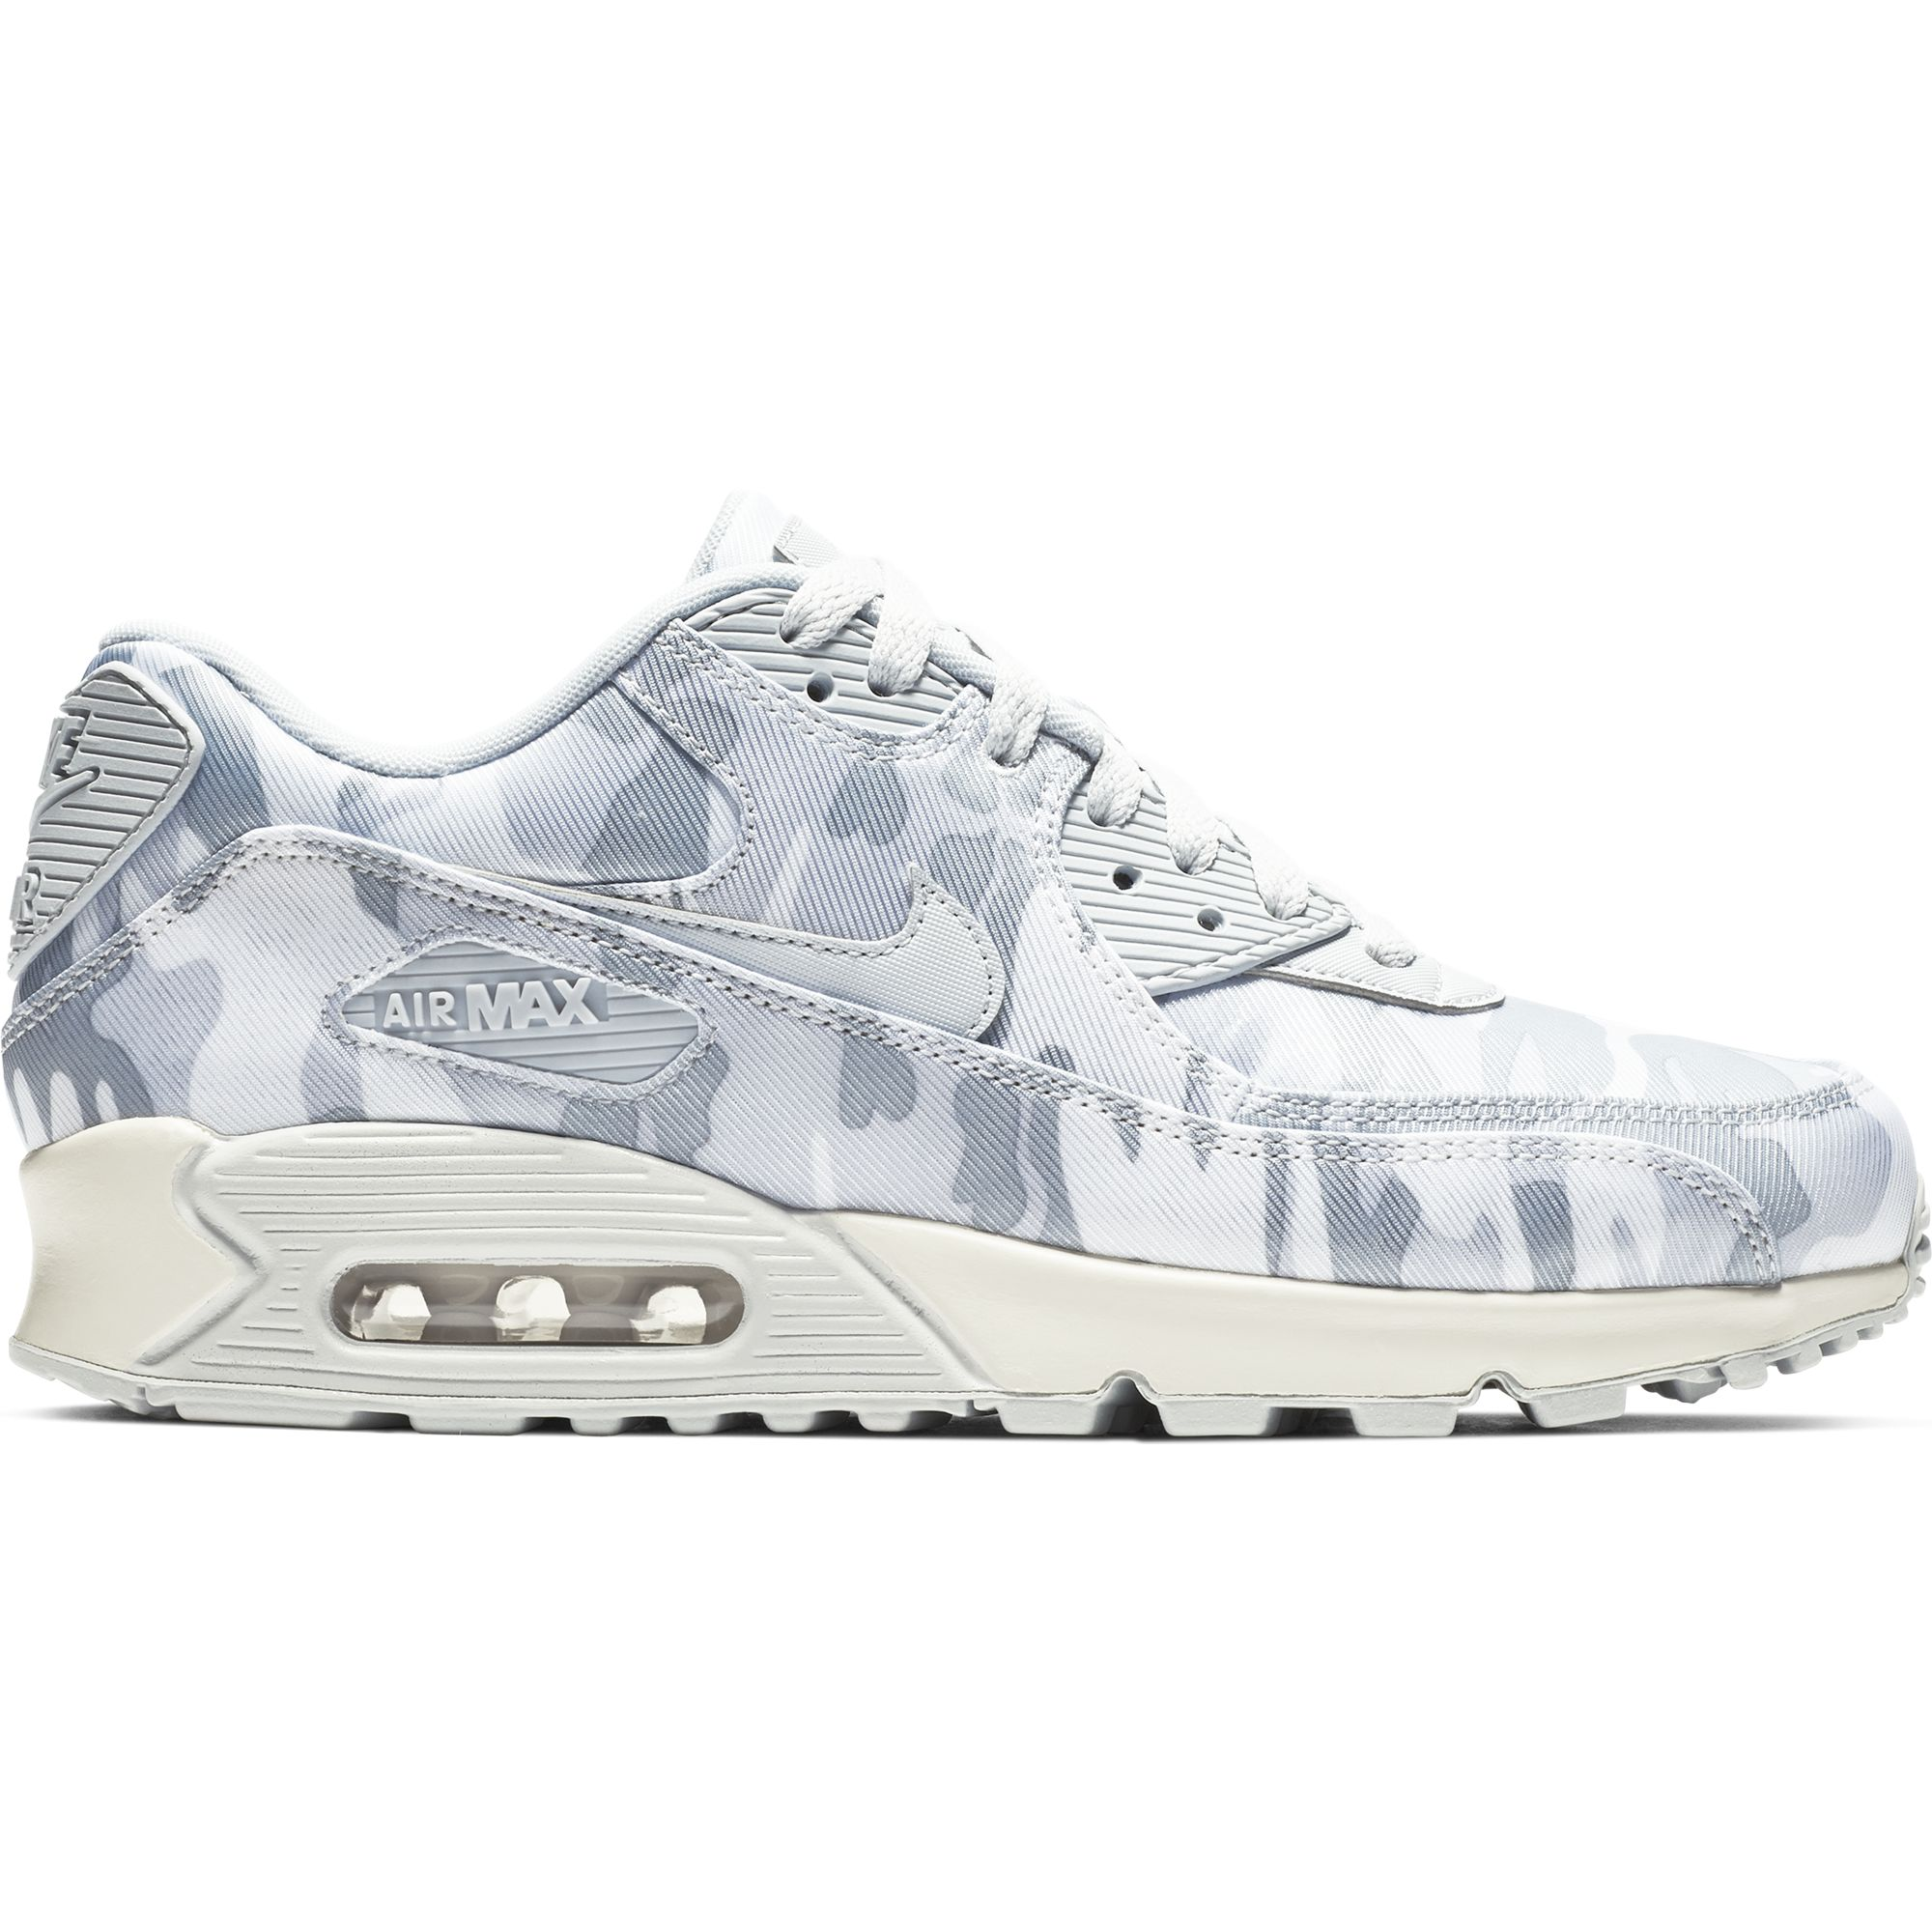 online store beee1 f5ea6 Nike Women's Air Max 90 CSE Camo Sneakers, Summit White/Wolf Grey | eBay